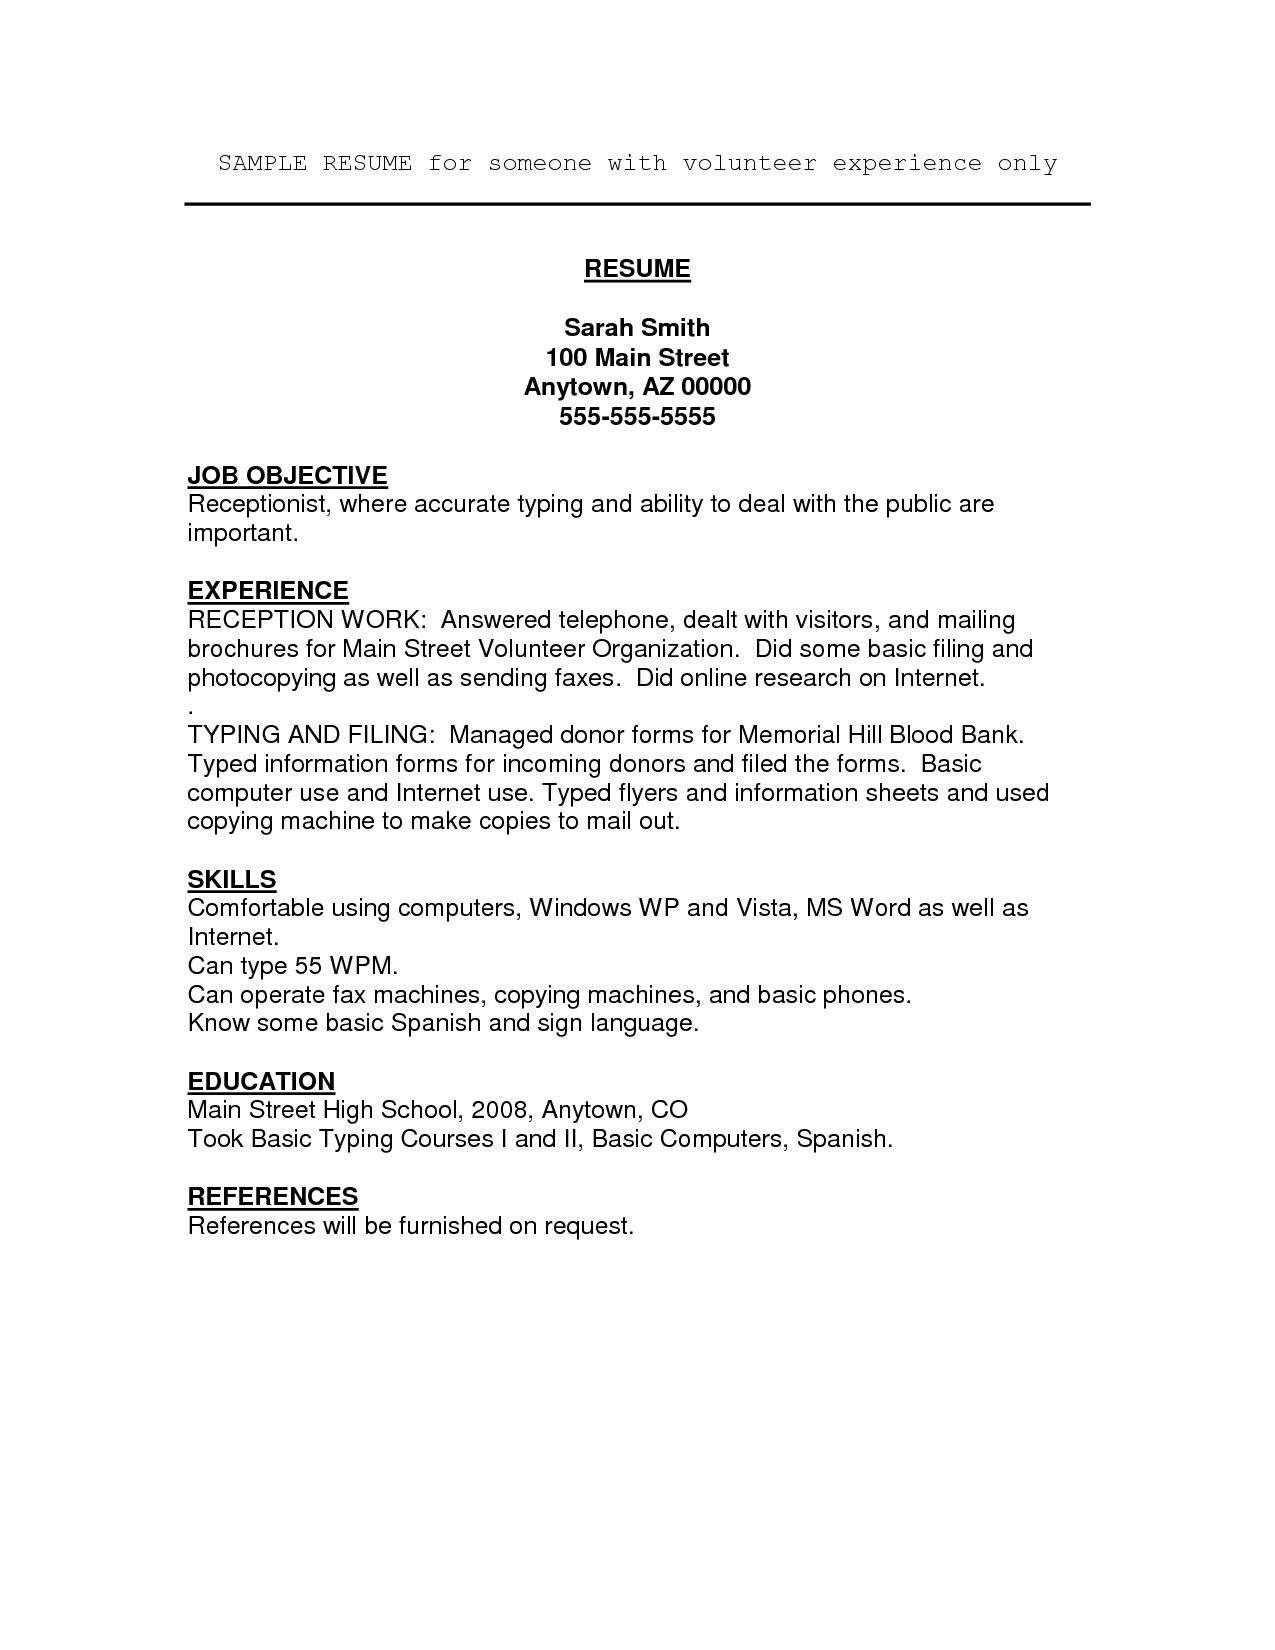 Resume Word Template Magnificent Job Resume Volunteer Experience  Httpwwwresumecareerjob Review